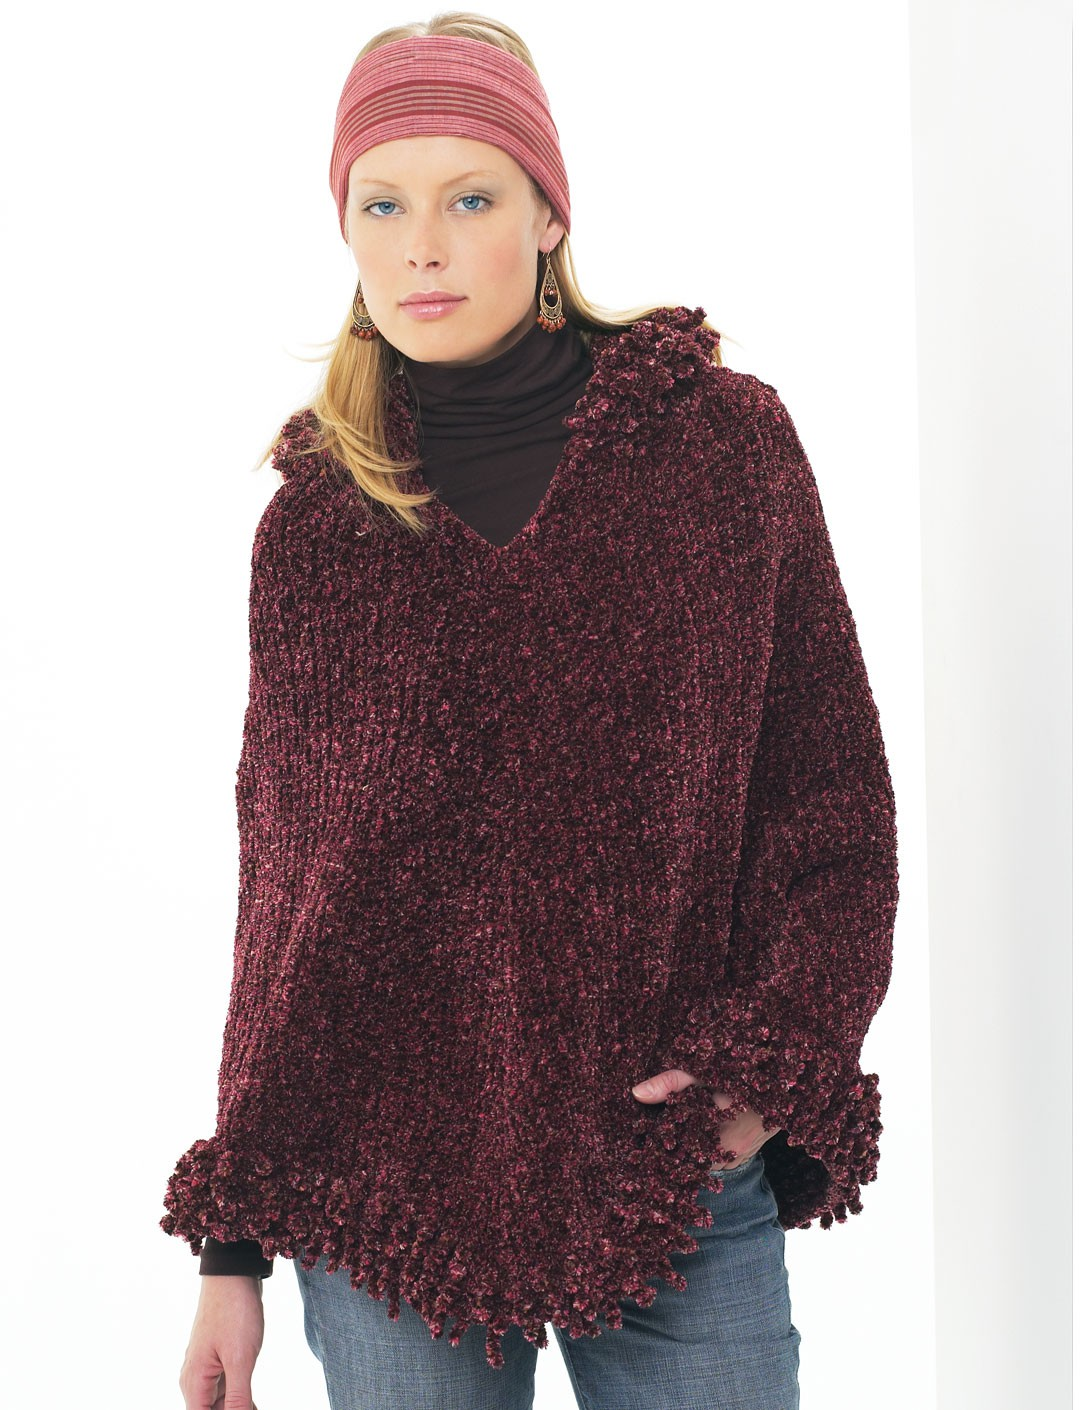 Hooded Poncho - Patterns Yarnspirations